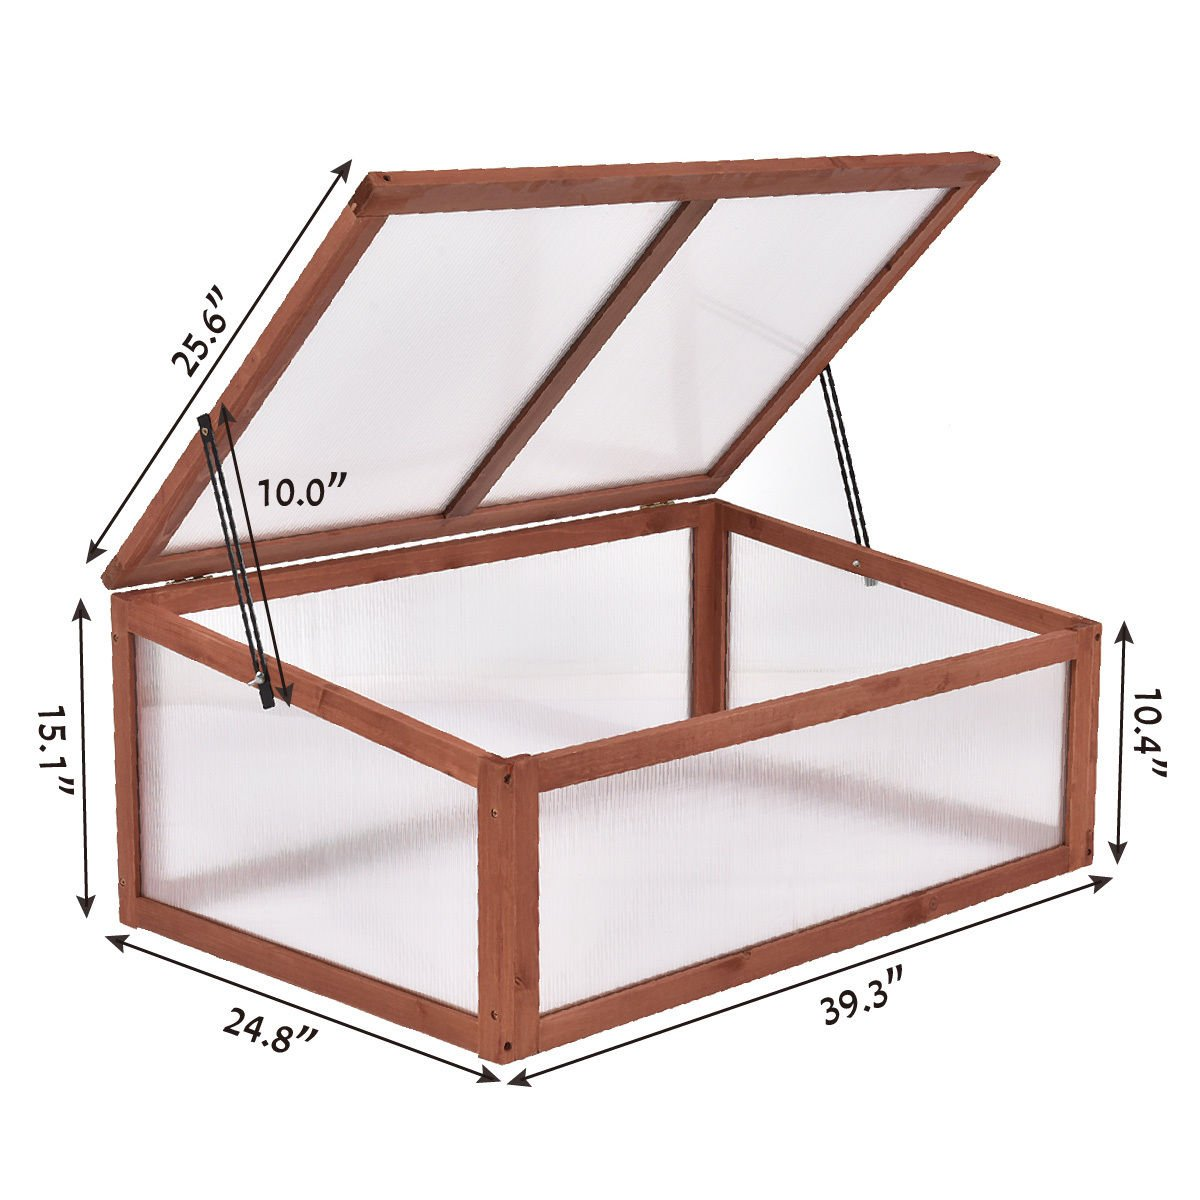 Garden Portable Wooden Raised Plants Full Green House Cold Frame Bed Protection Outdoors for mini by Heaven Tvcz (Image #3)